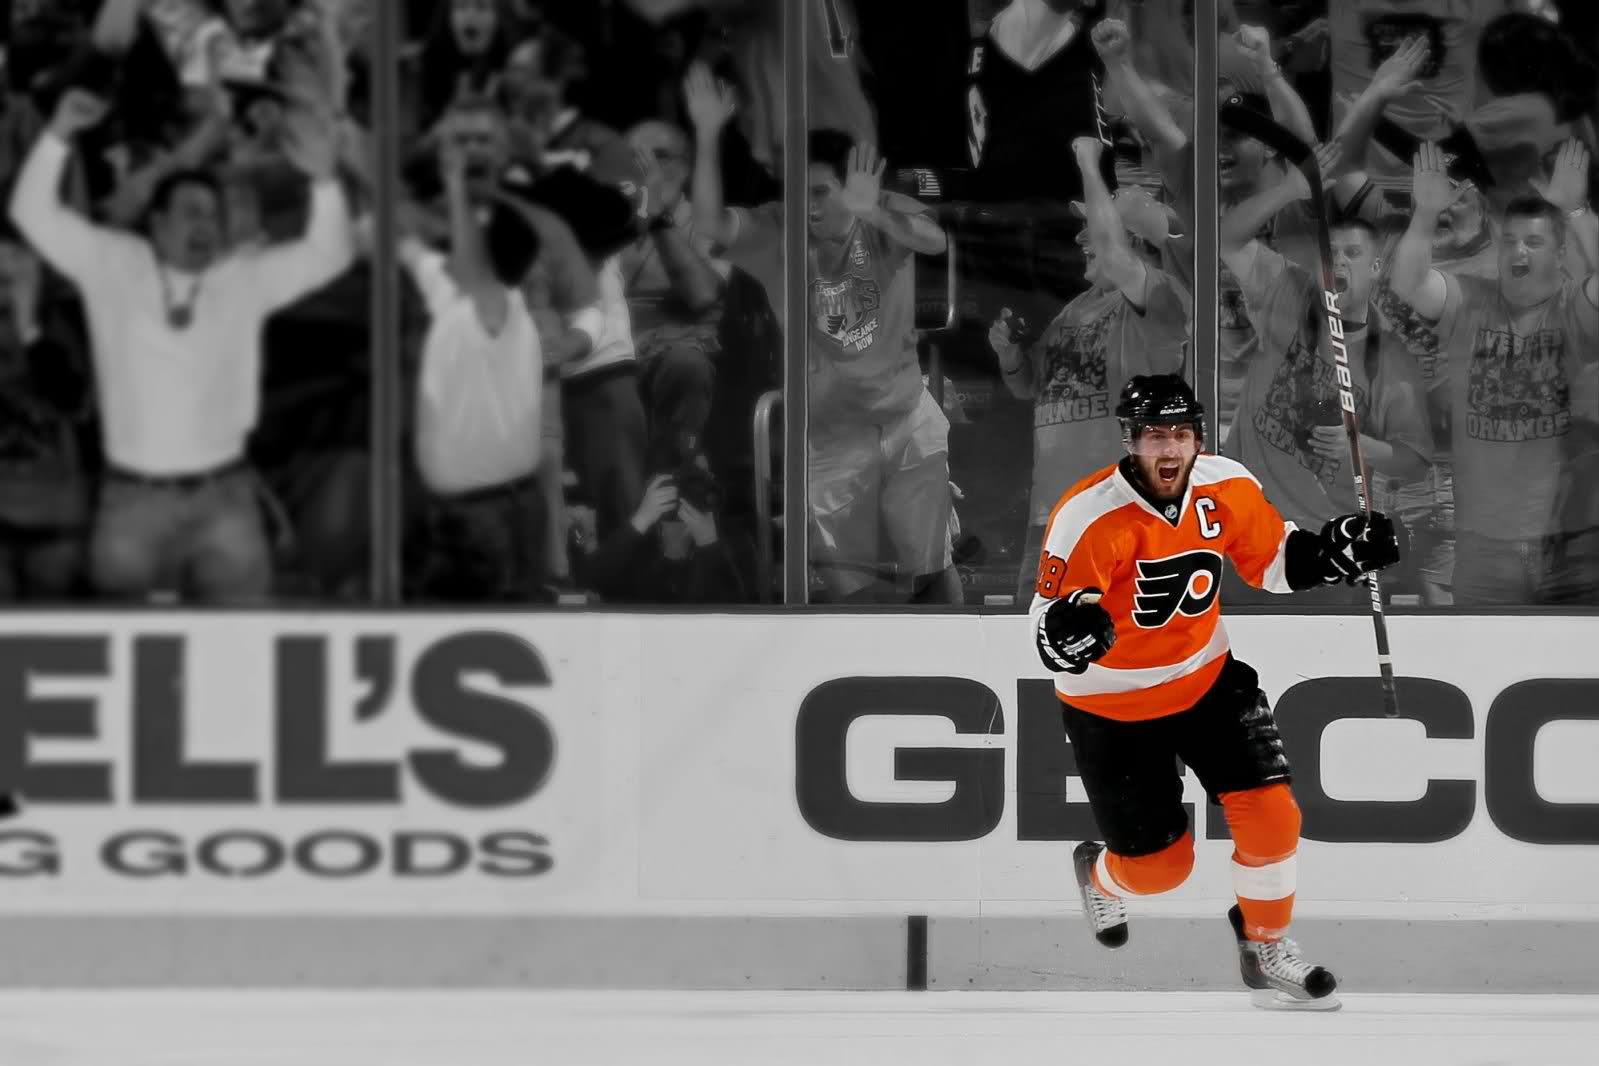 Philadelphia Flyers Screensavers Wallpaper - WallpaperSafari